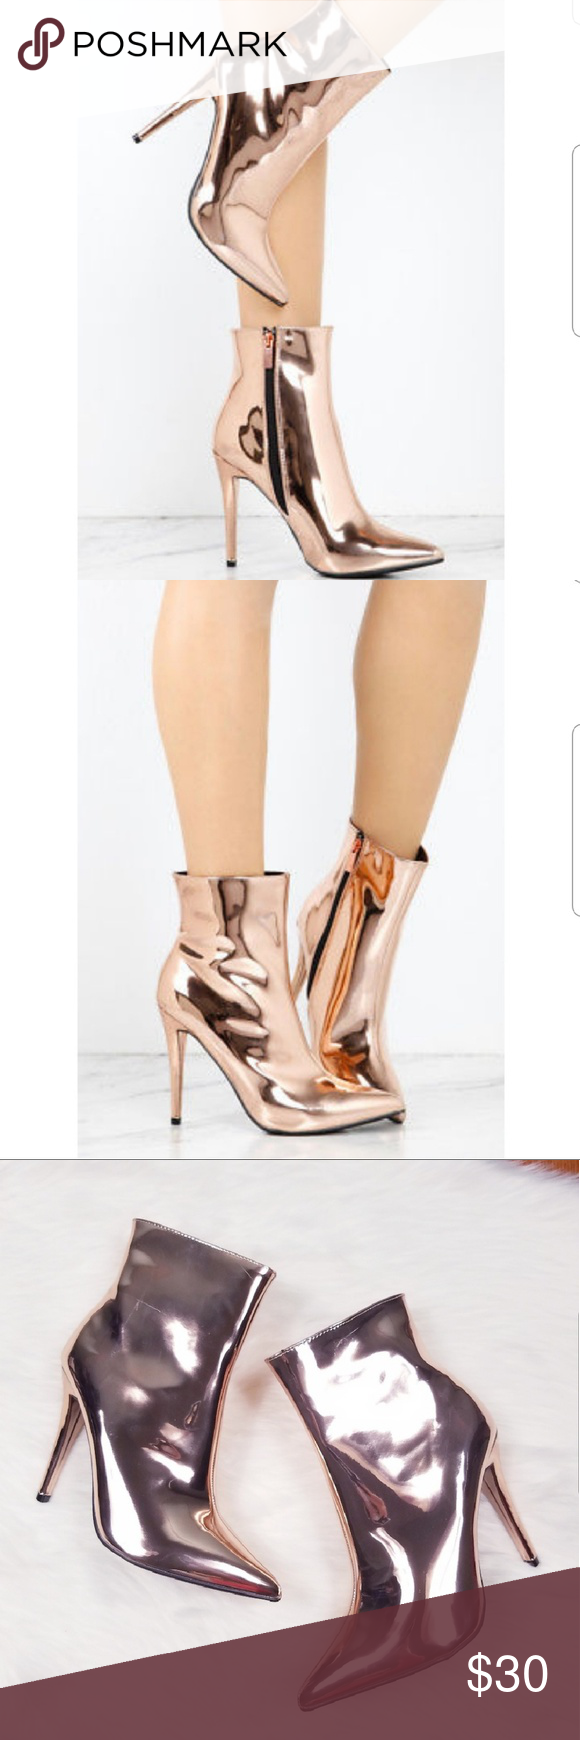 5cf0a2bf201 Rose gold metallic booties NWOB Rose gold metallic party ankle boots  Pointed toe Skinny heel 4